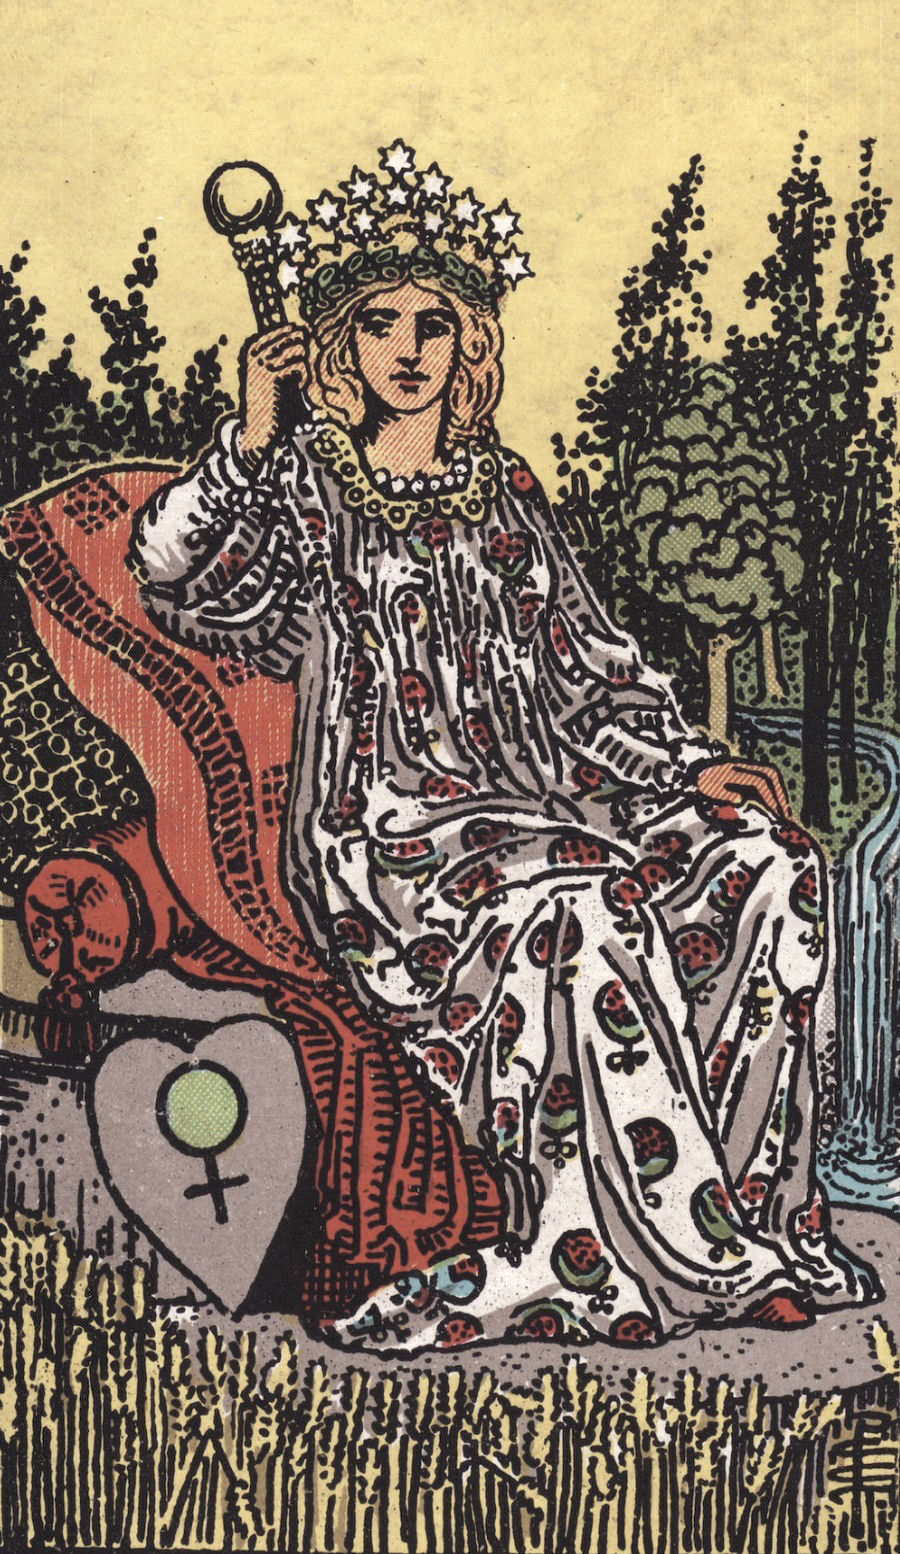 The Empress - Just looking at this card gives us an insight into its sexual meaning. Here is a woman who is clearly feeling herself. The grounded confidence of The Empress represents a deep-seated undertsanding of one's body as the root of their sexuality. Pleasure is wild, free, and undeniably hers. This card can reflect self-pleasuring, sexual generosity with healthy boundaries, and valuing pleasure for pleasure's sake.